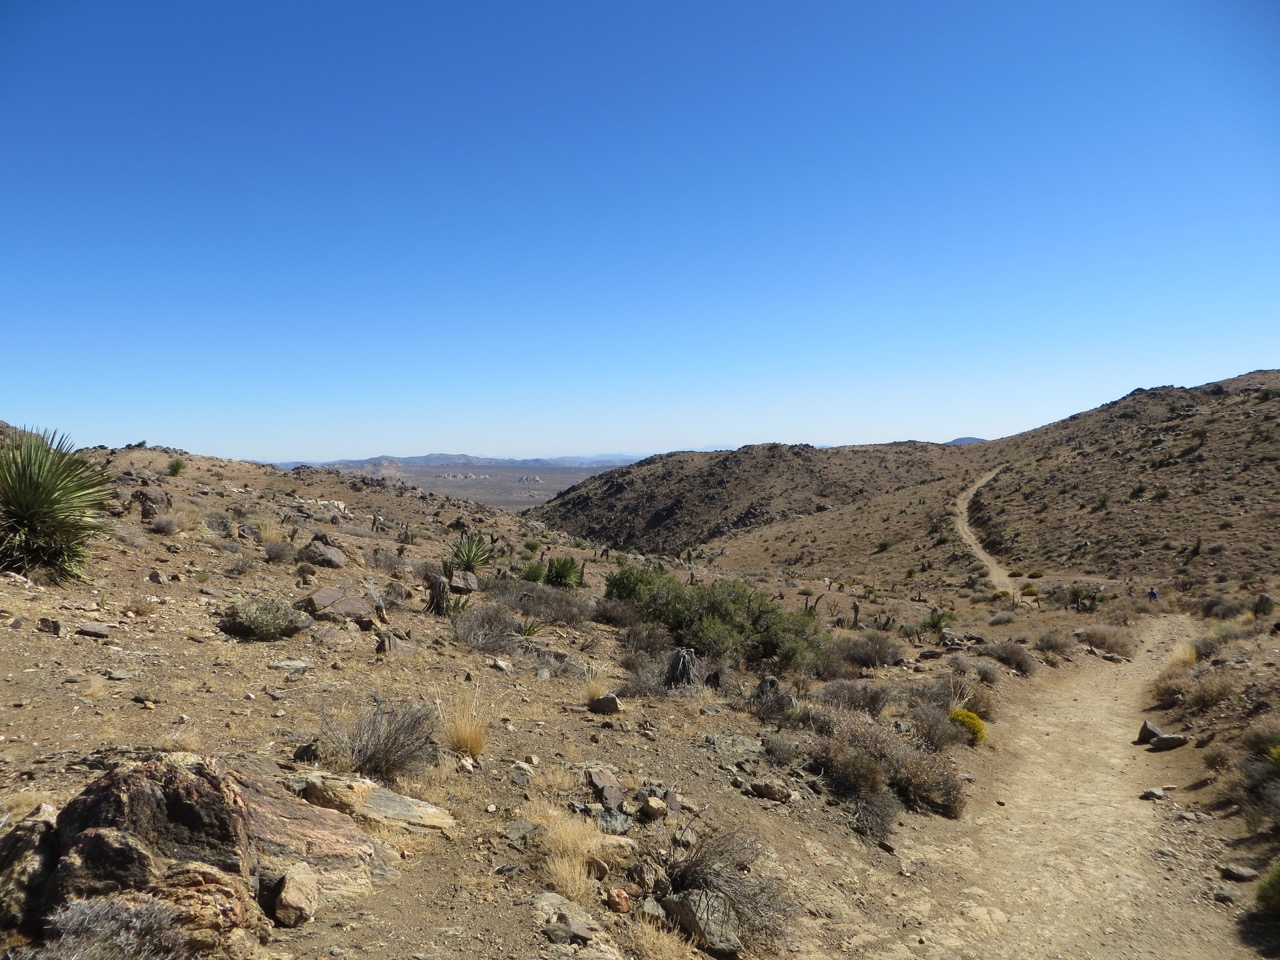 Trail into the distance of the desert